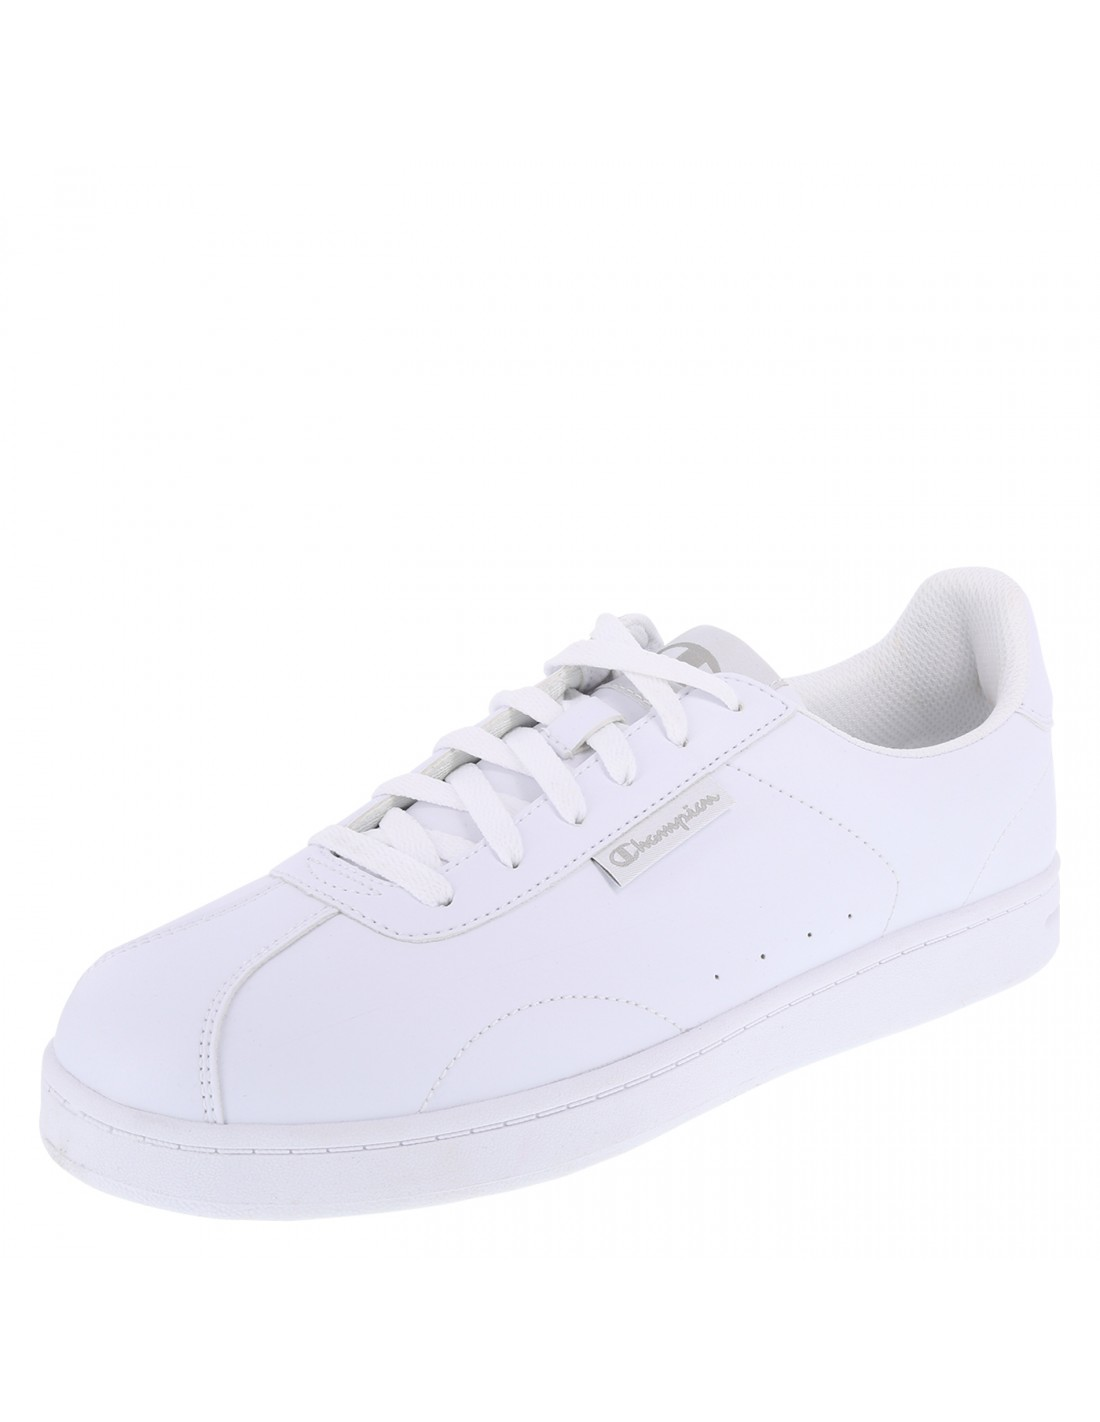 b7611cf22f6e Men s Rally Court sneakers - White. On sale!